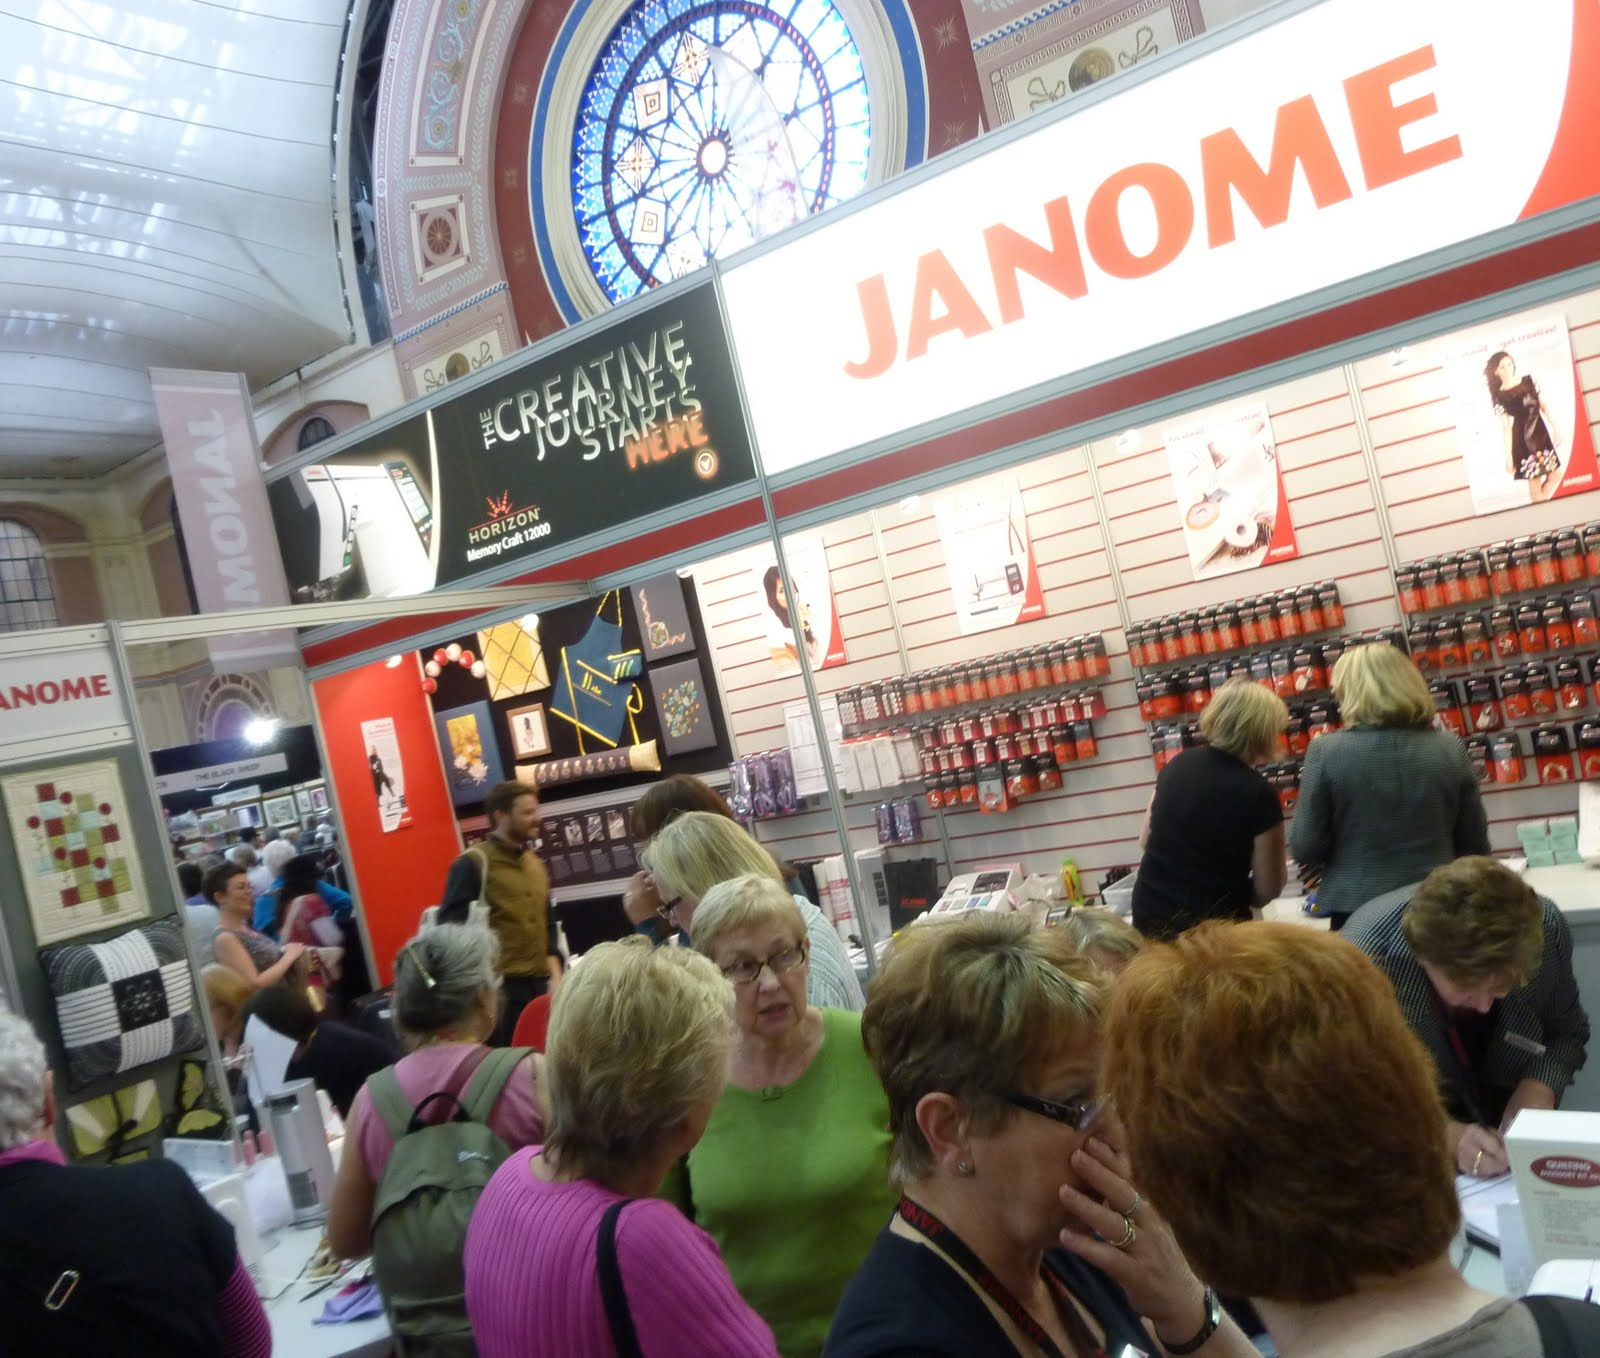 Janome memory craft 12000 - We Had A Wonderful Time At The Knitting And Stitching Show And As You Can See We Were Very Busy Everyone Loved The New Horizon Memory Craft 12000